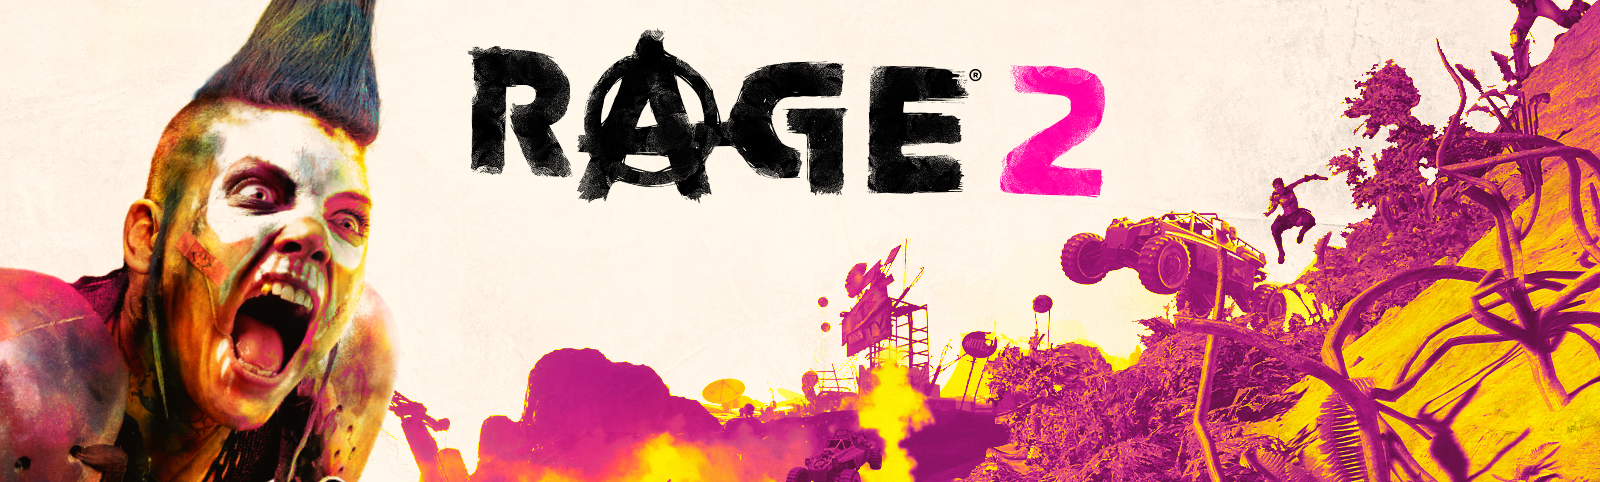 rage2headerps4m18kym.png